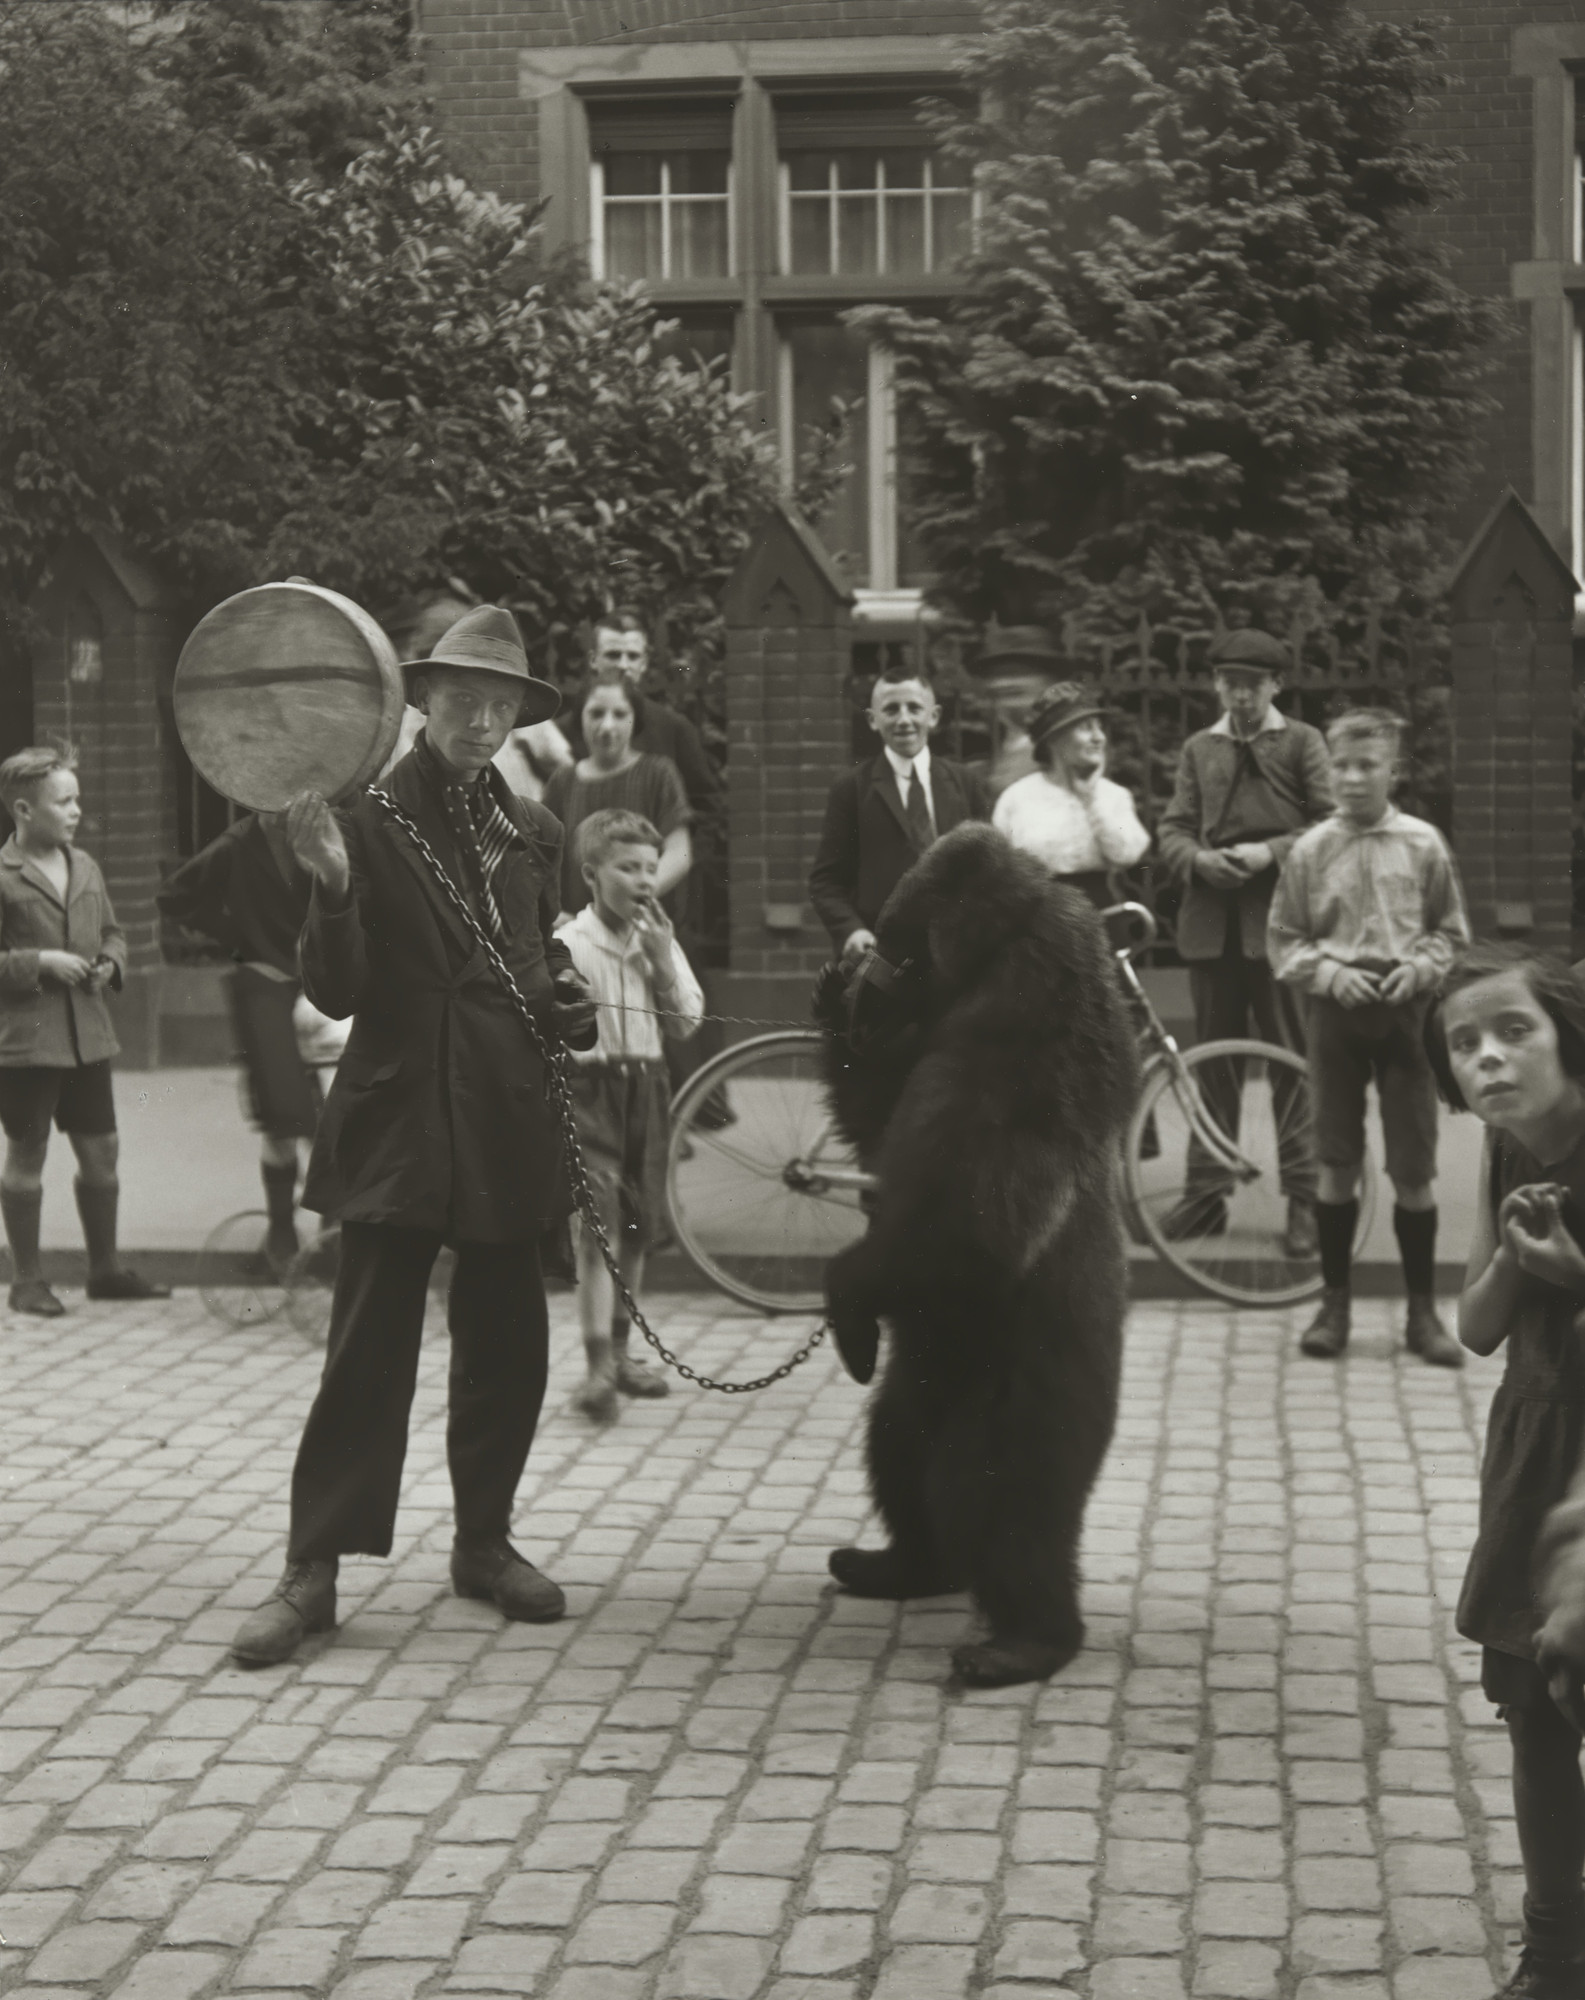 August Sander. Showman with Performing Bear in Cologne. 1923